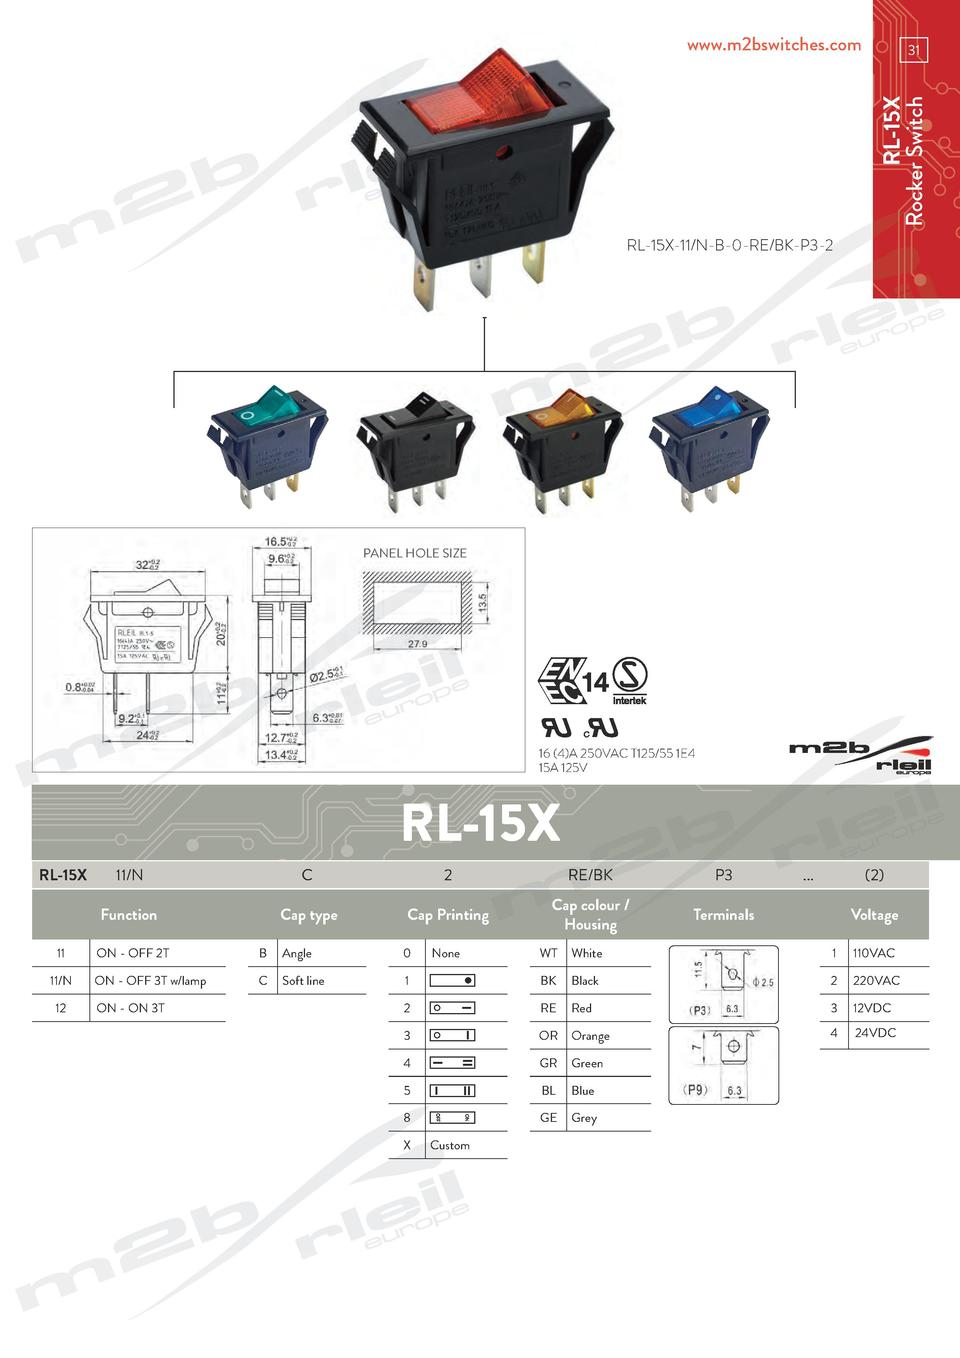 www.m2bswitches.com  RL-15X Rocker Switch  31  RL-15X-11 N-B-0-RE BK-P3-2  PANEL HOLE SIZE  16  4 A 250VAC T125 55 1E4 15A...